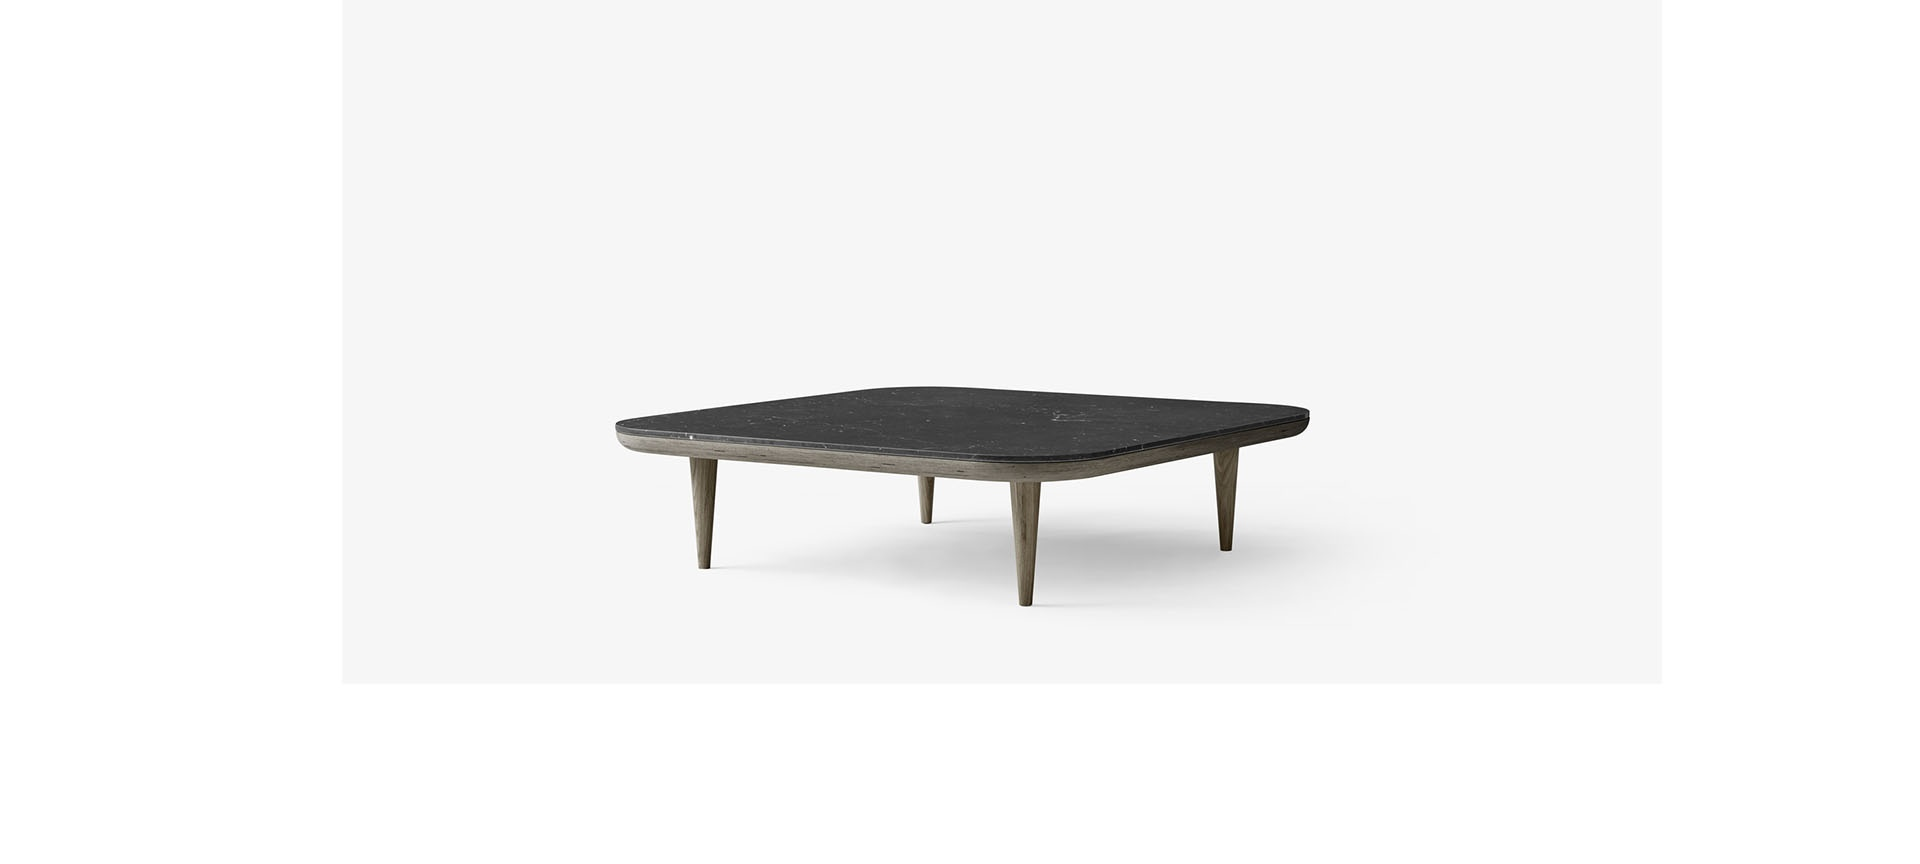 Table Basse Fly Table Basse Fly - Sc11 - 120x120 Cm - And Tradition - Blou